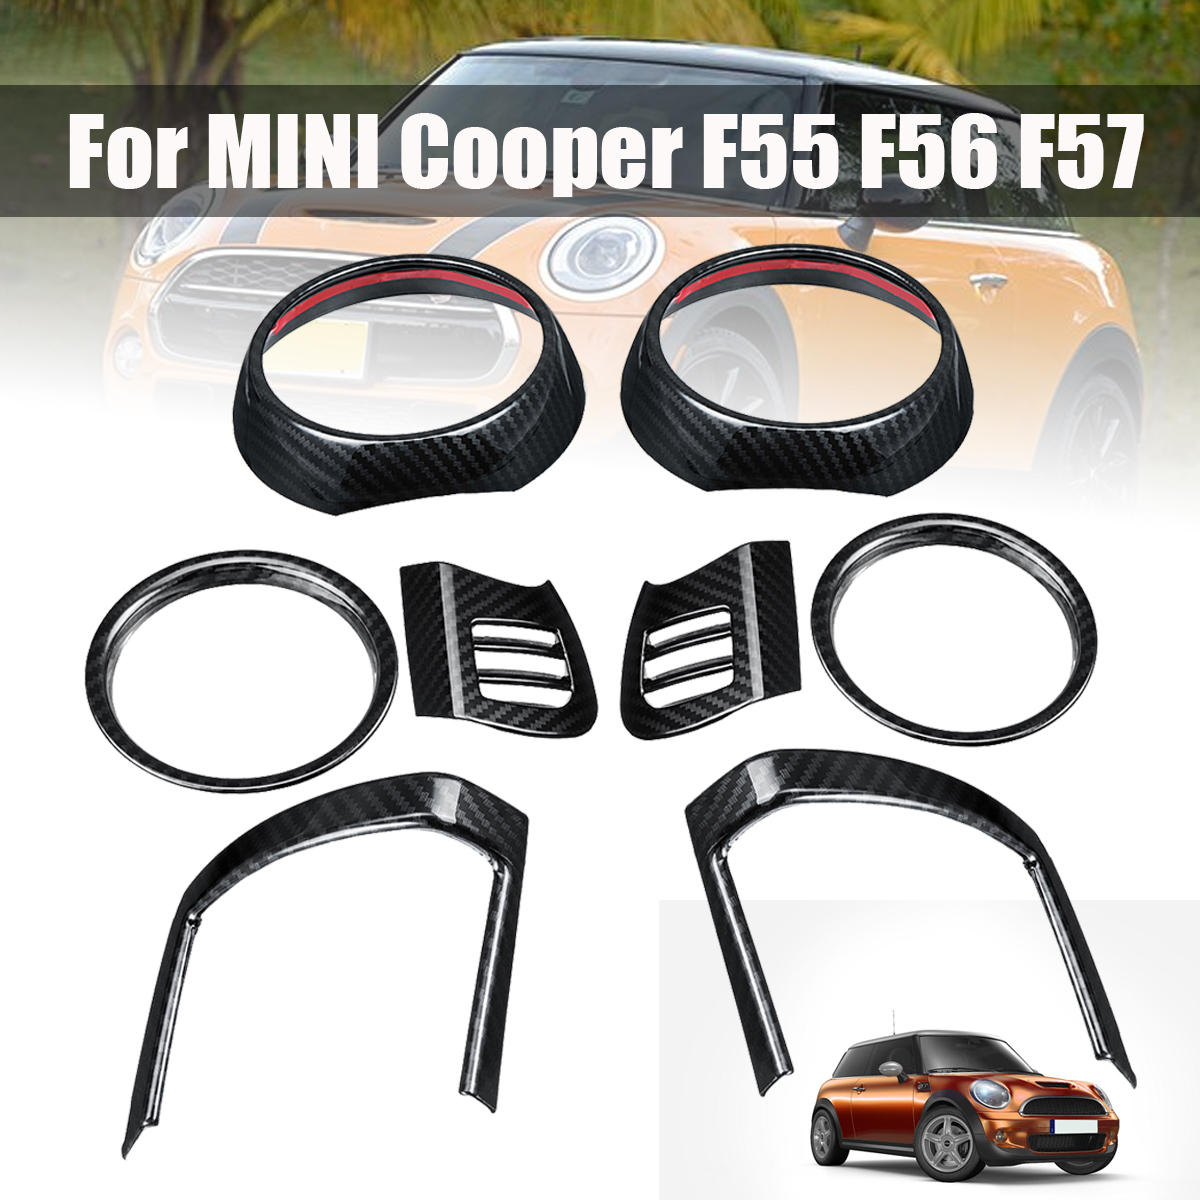 цены 8Pcs Dash Air Vent Cover for BMW for MINI for Cooper F55 F56 F57 Auto Interior Mouldings Carbon Fiber Air Outlet Stickers Trims